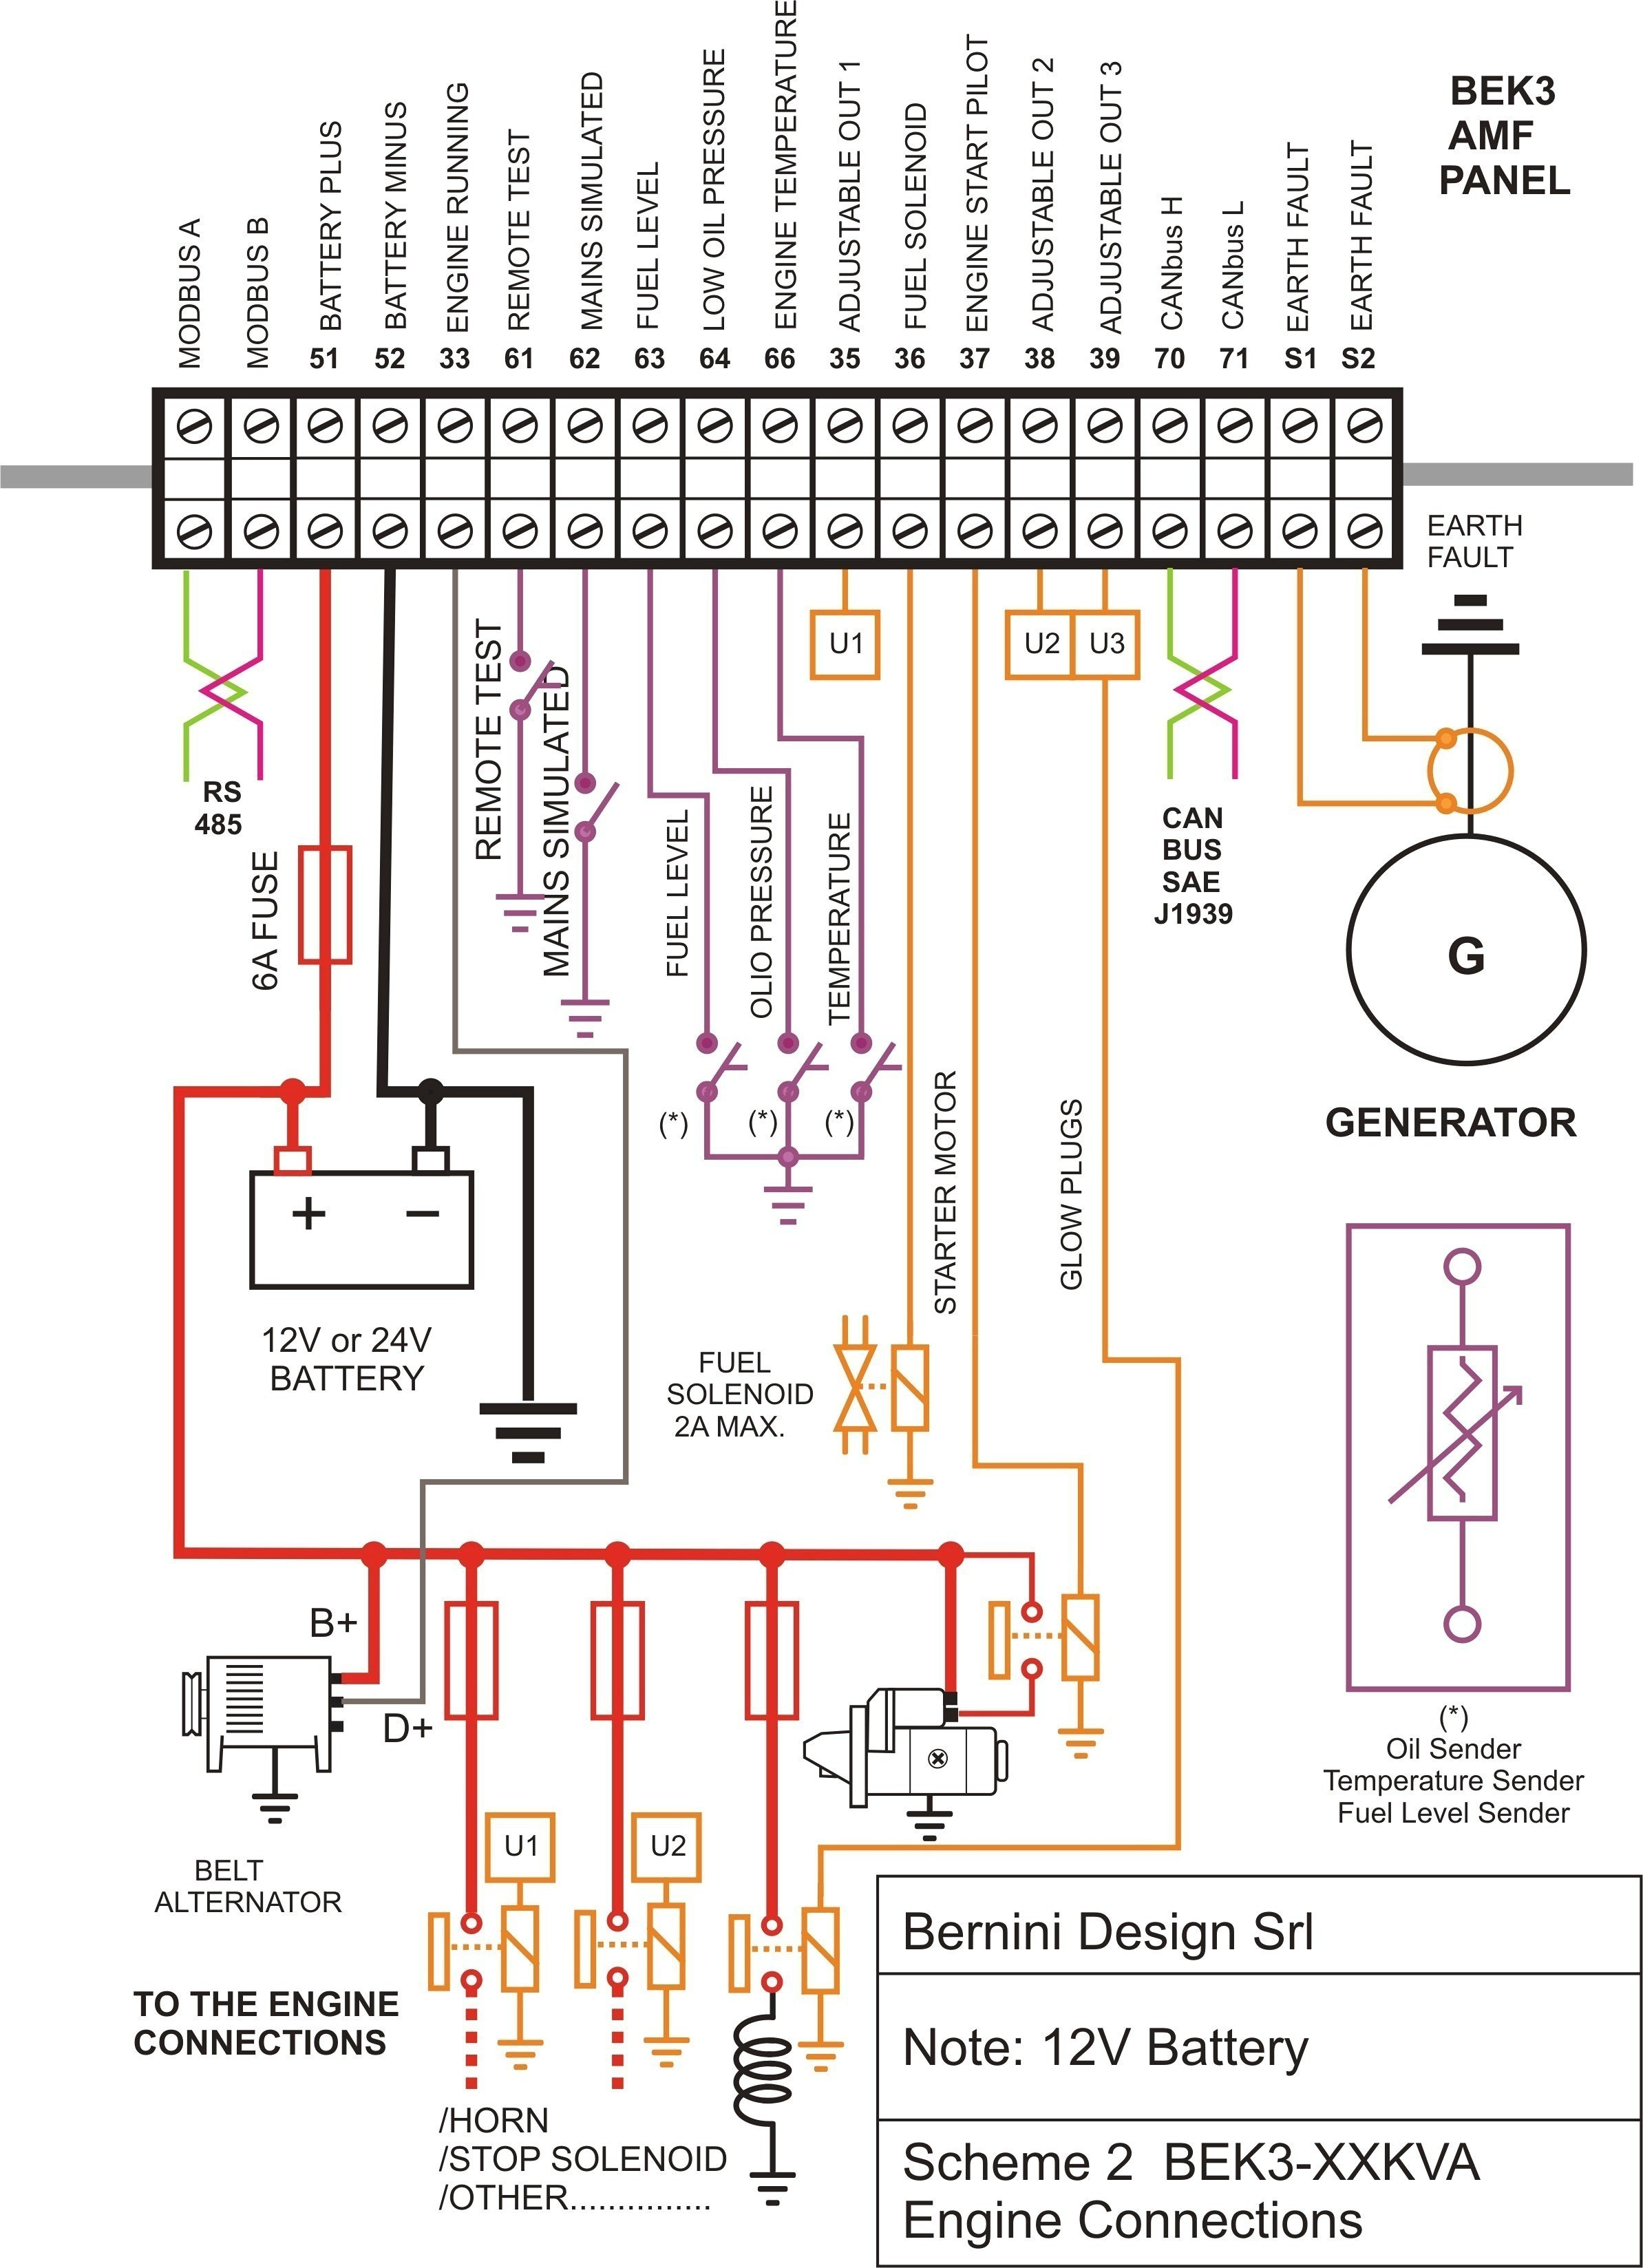 Toyota 1nz Fe Engine Wiring Diagram Awesome Mercial Electrical Wiring Basics • Electrical Outlet Of Toyota 1nz Fe Engine Wiring Diagram